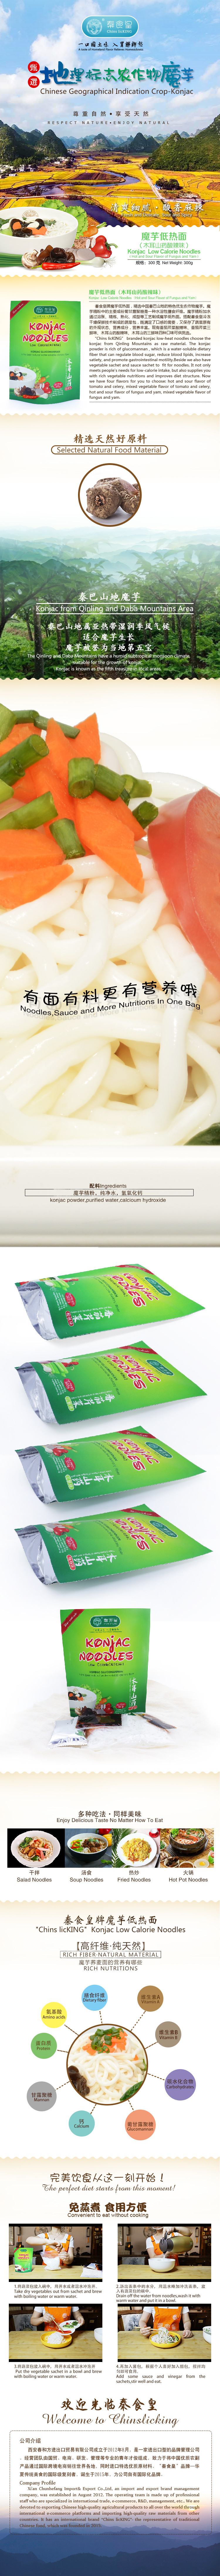 Xi'an ChinslicKing Food Co., Ltd.